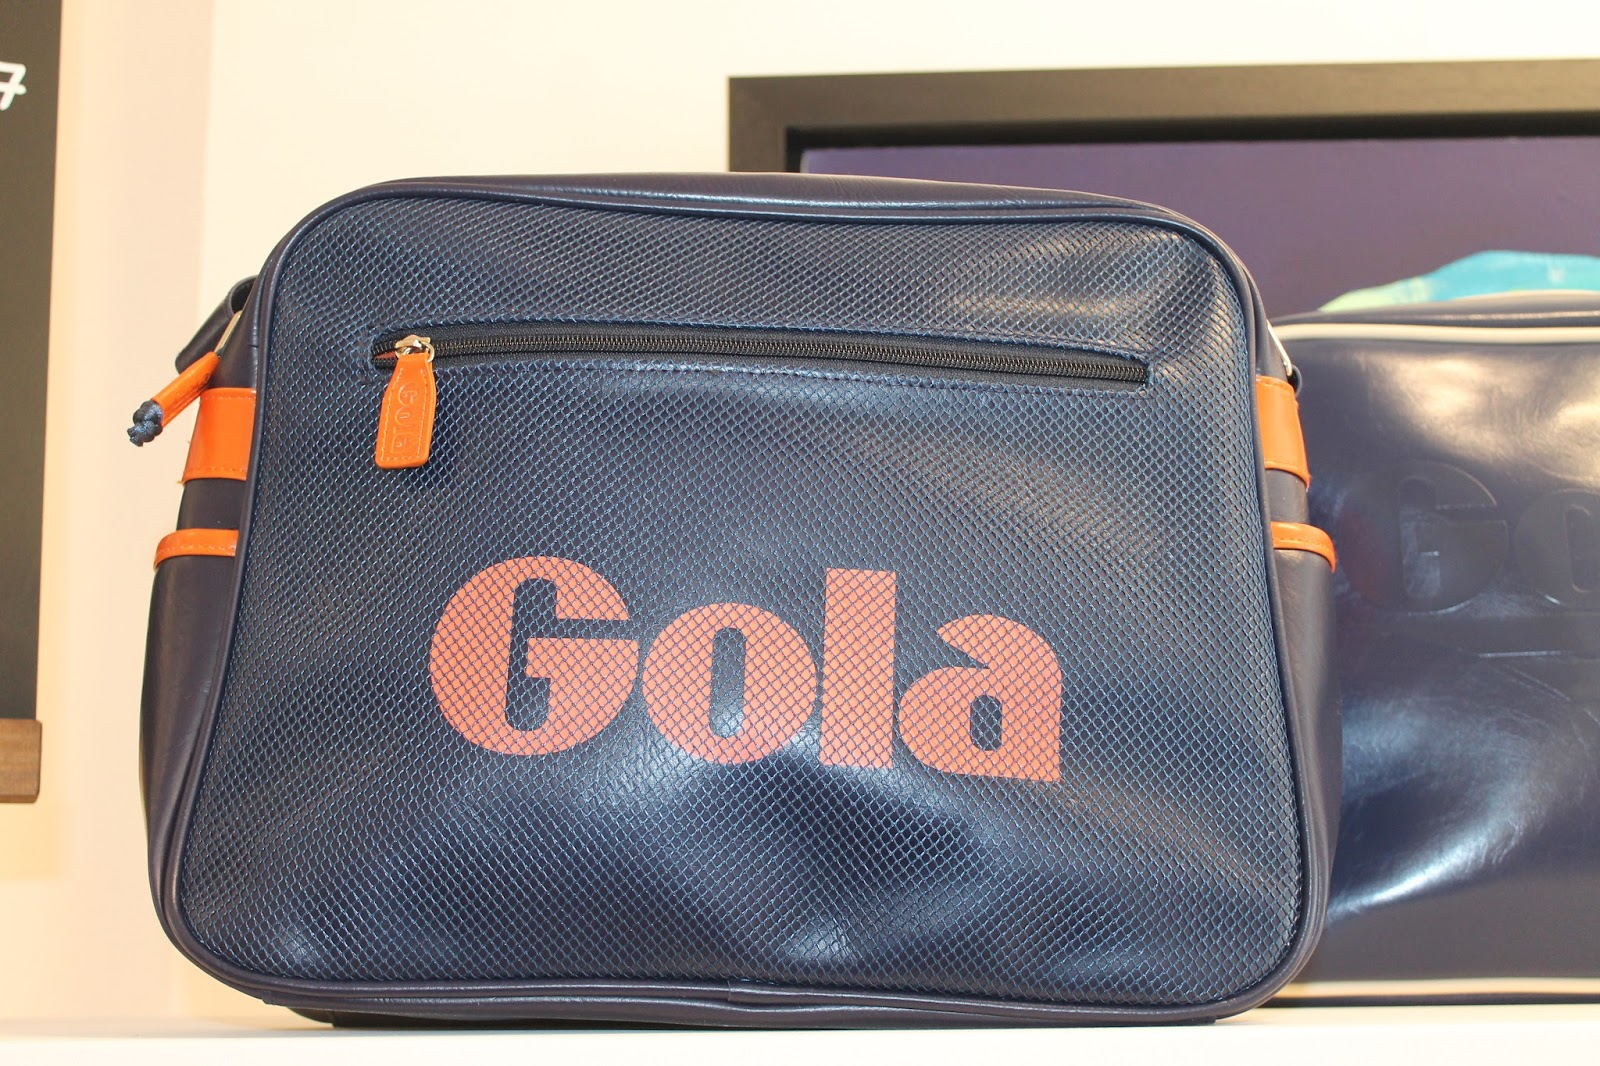 26211992ab  In Store  A messenger bag is ideal to carry all your essentials while  attending school. This Gola Classic Redford bag has got a retro vibe and a  ...